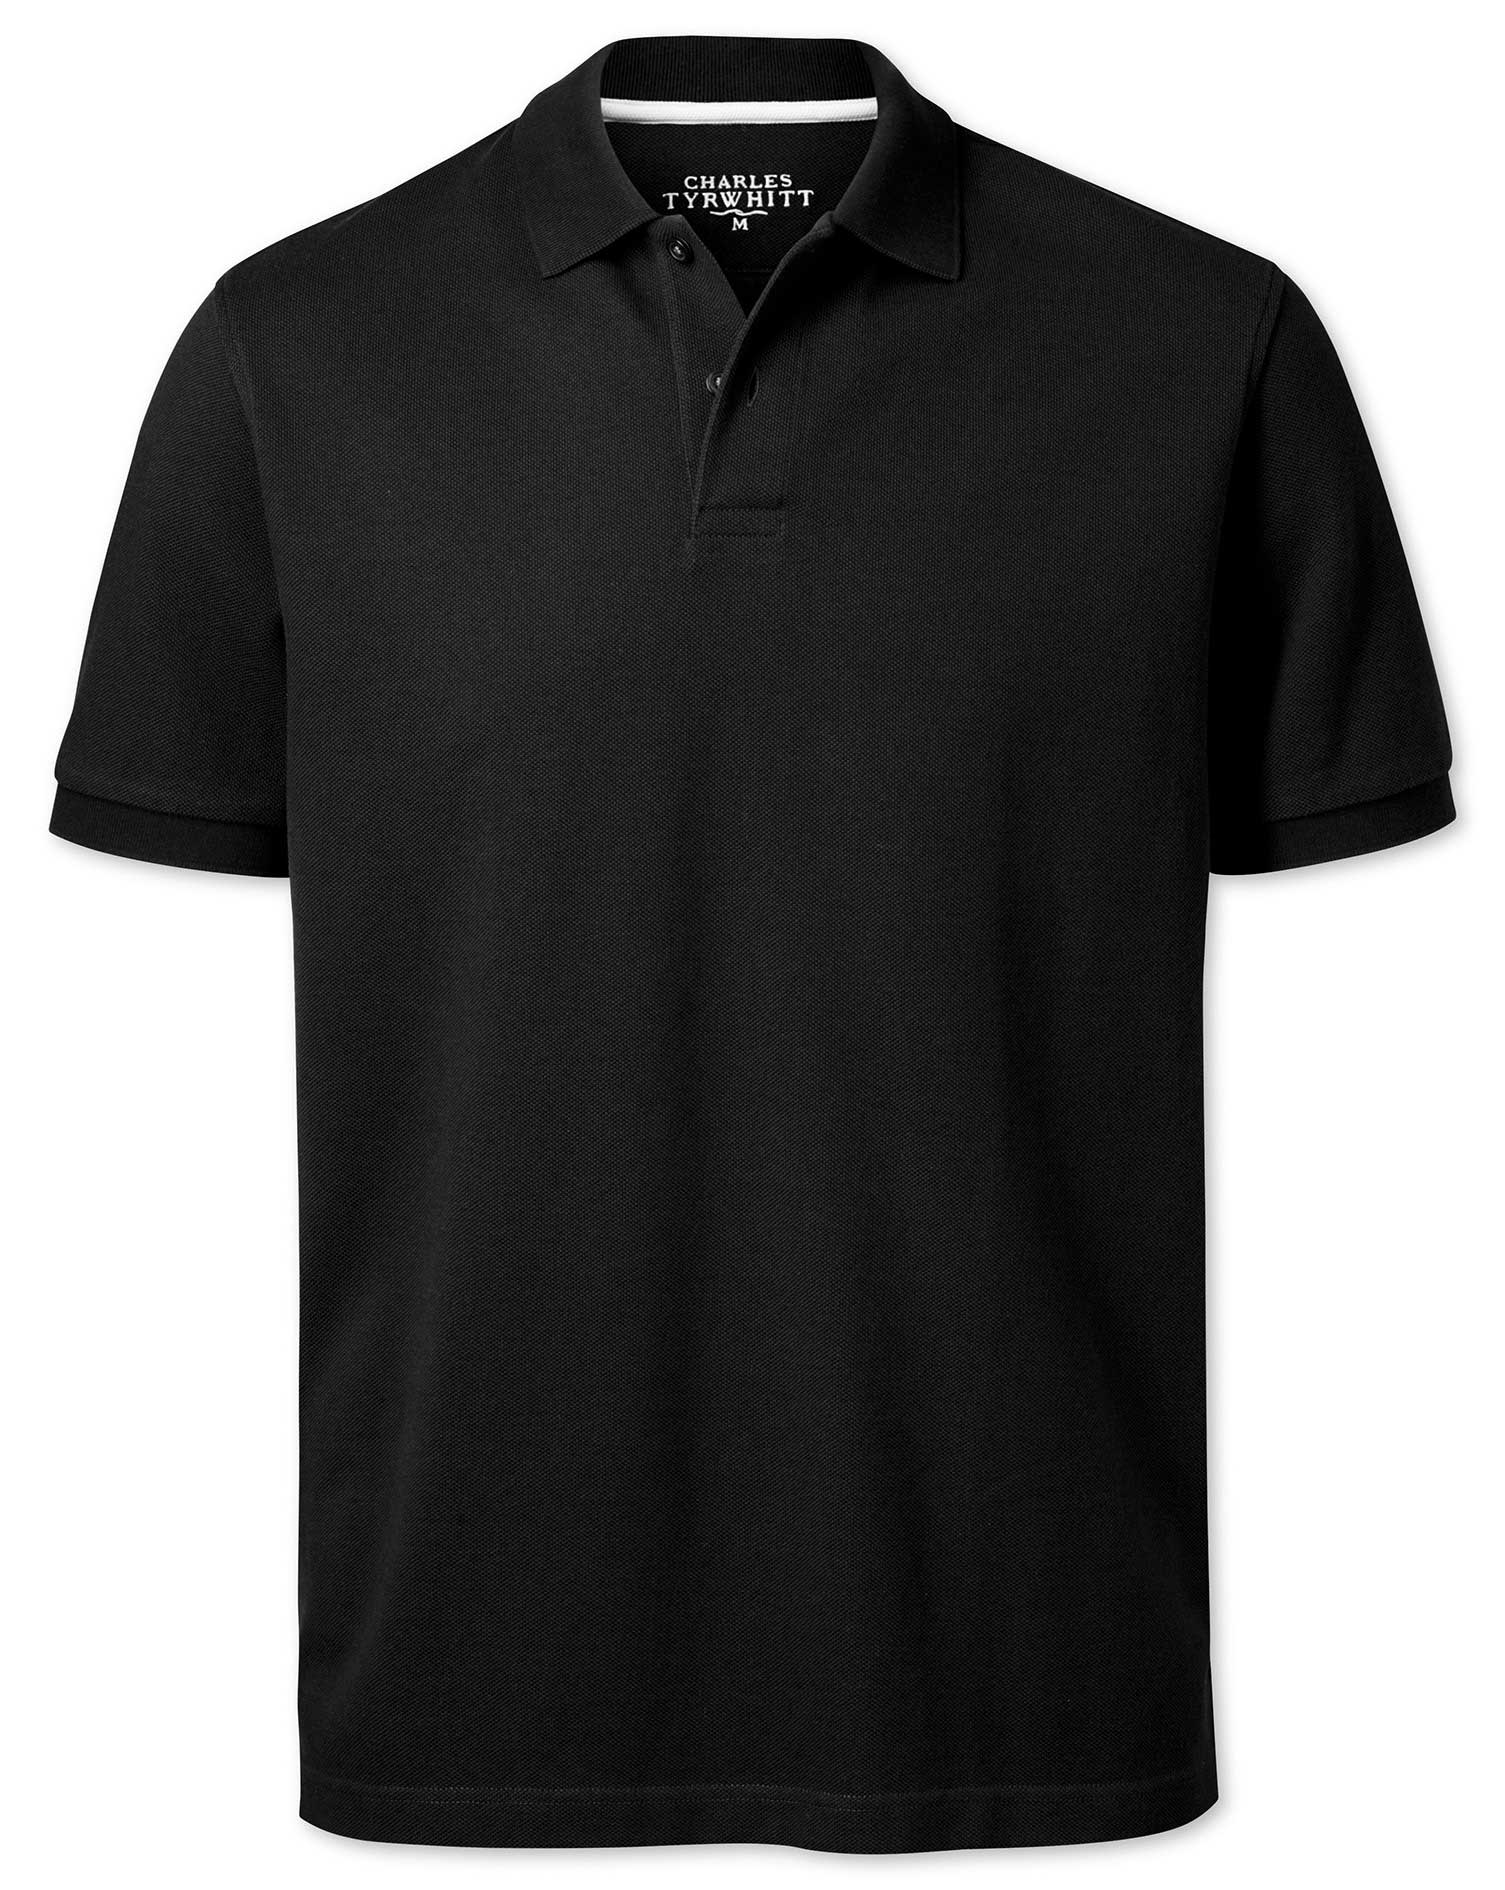 Black Pique Cotton Polo Size Small by Charles Tyrwhitt